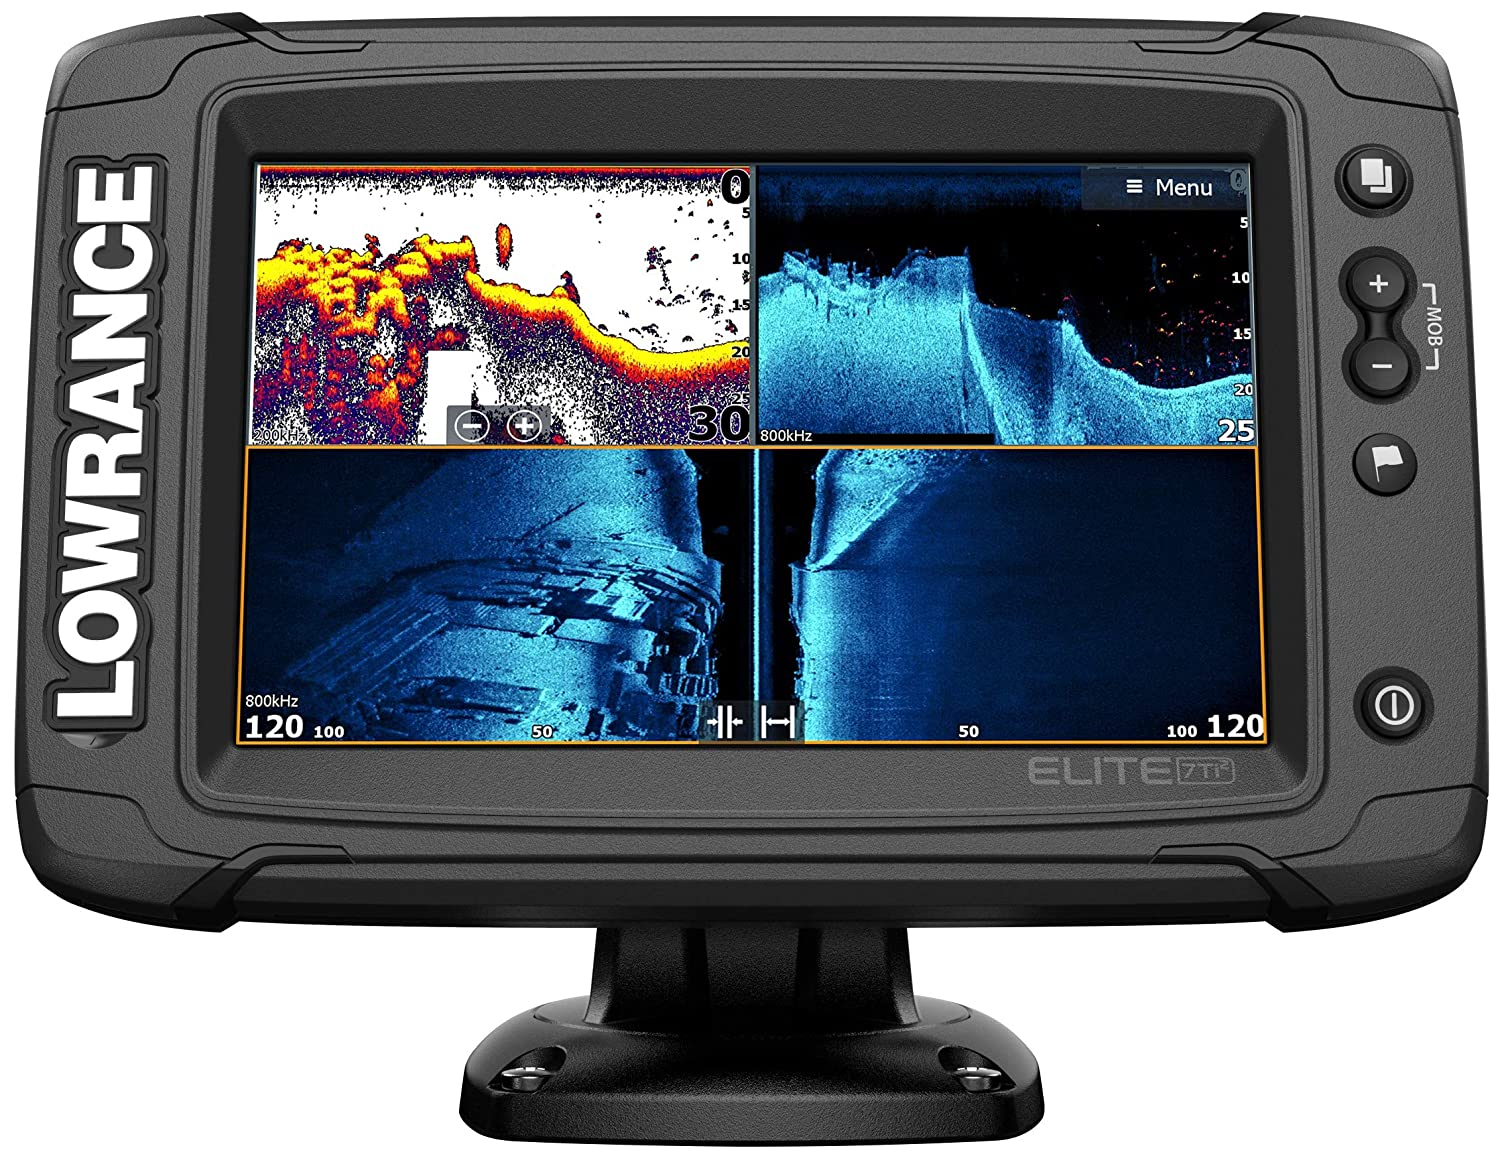 Lowrance Elite-7 Ti2-7-inch Fish Finder with HDI Transducer, Wireless  Networking, Real-Time Map Creation